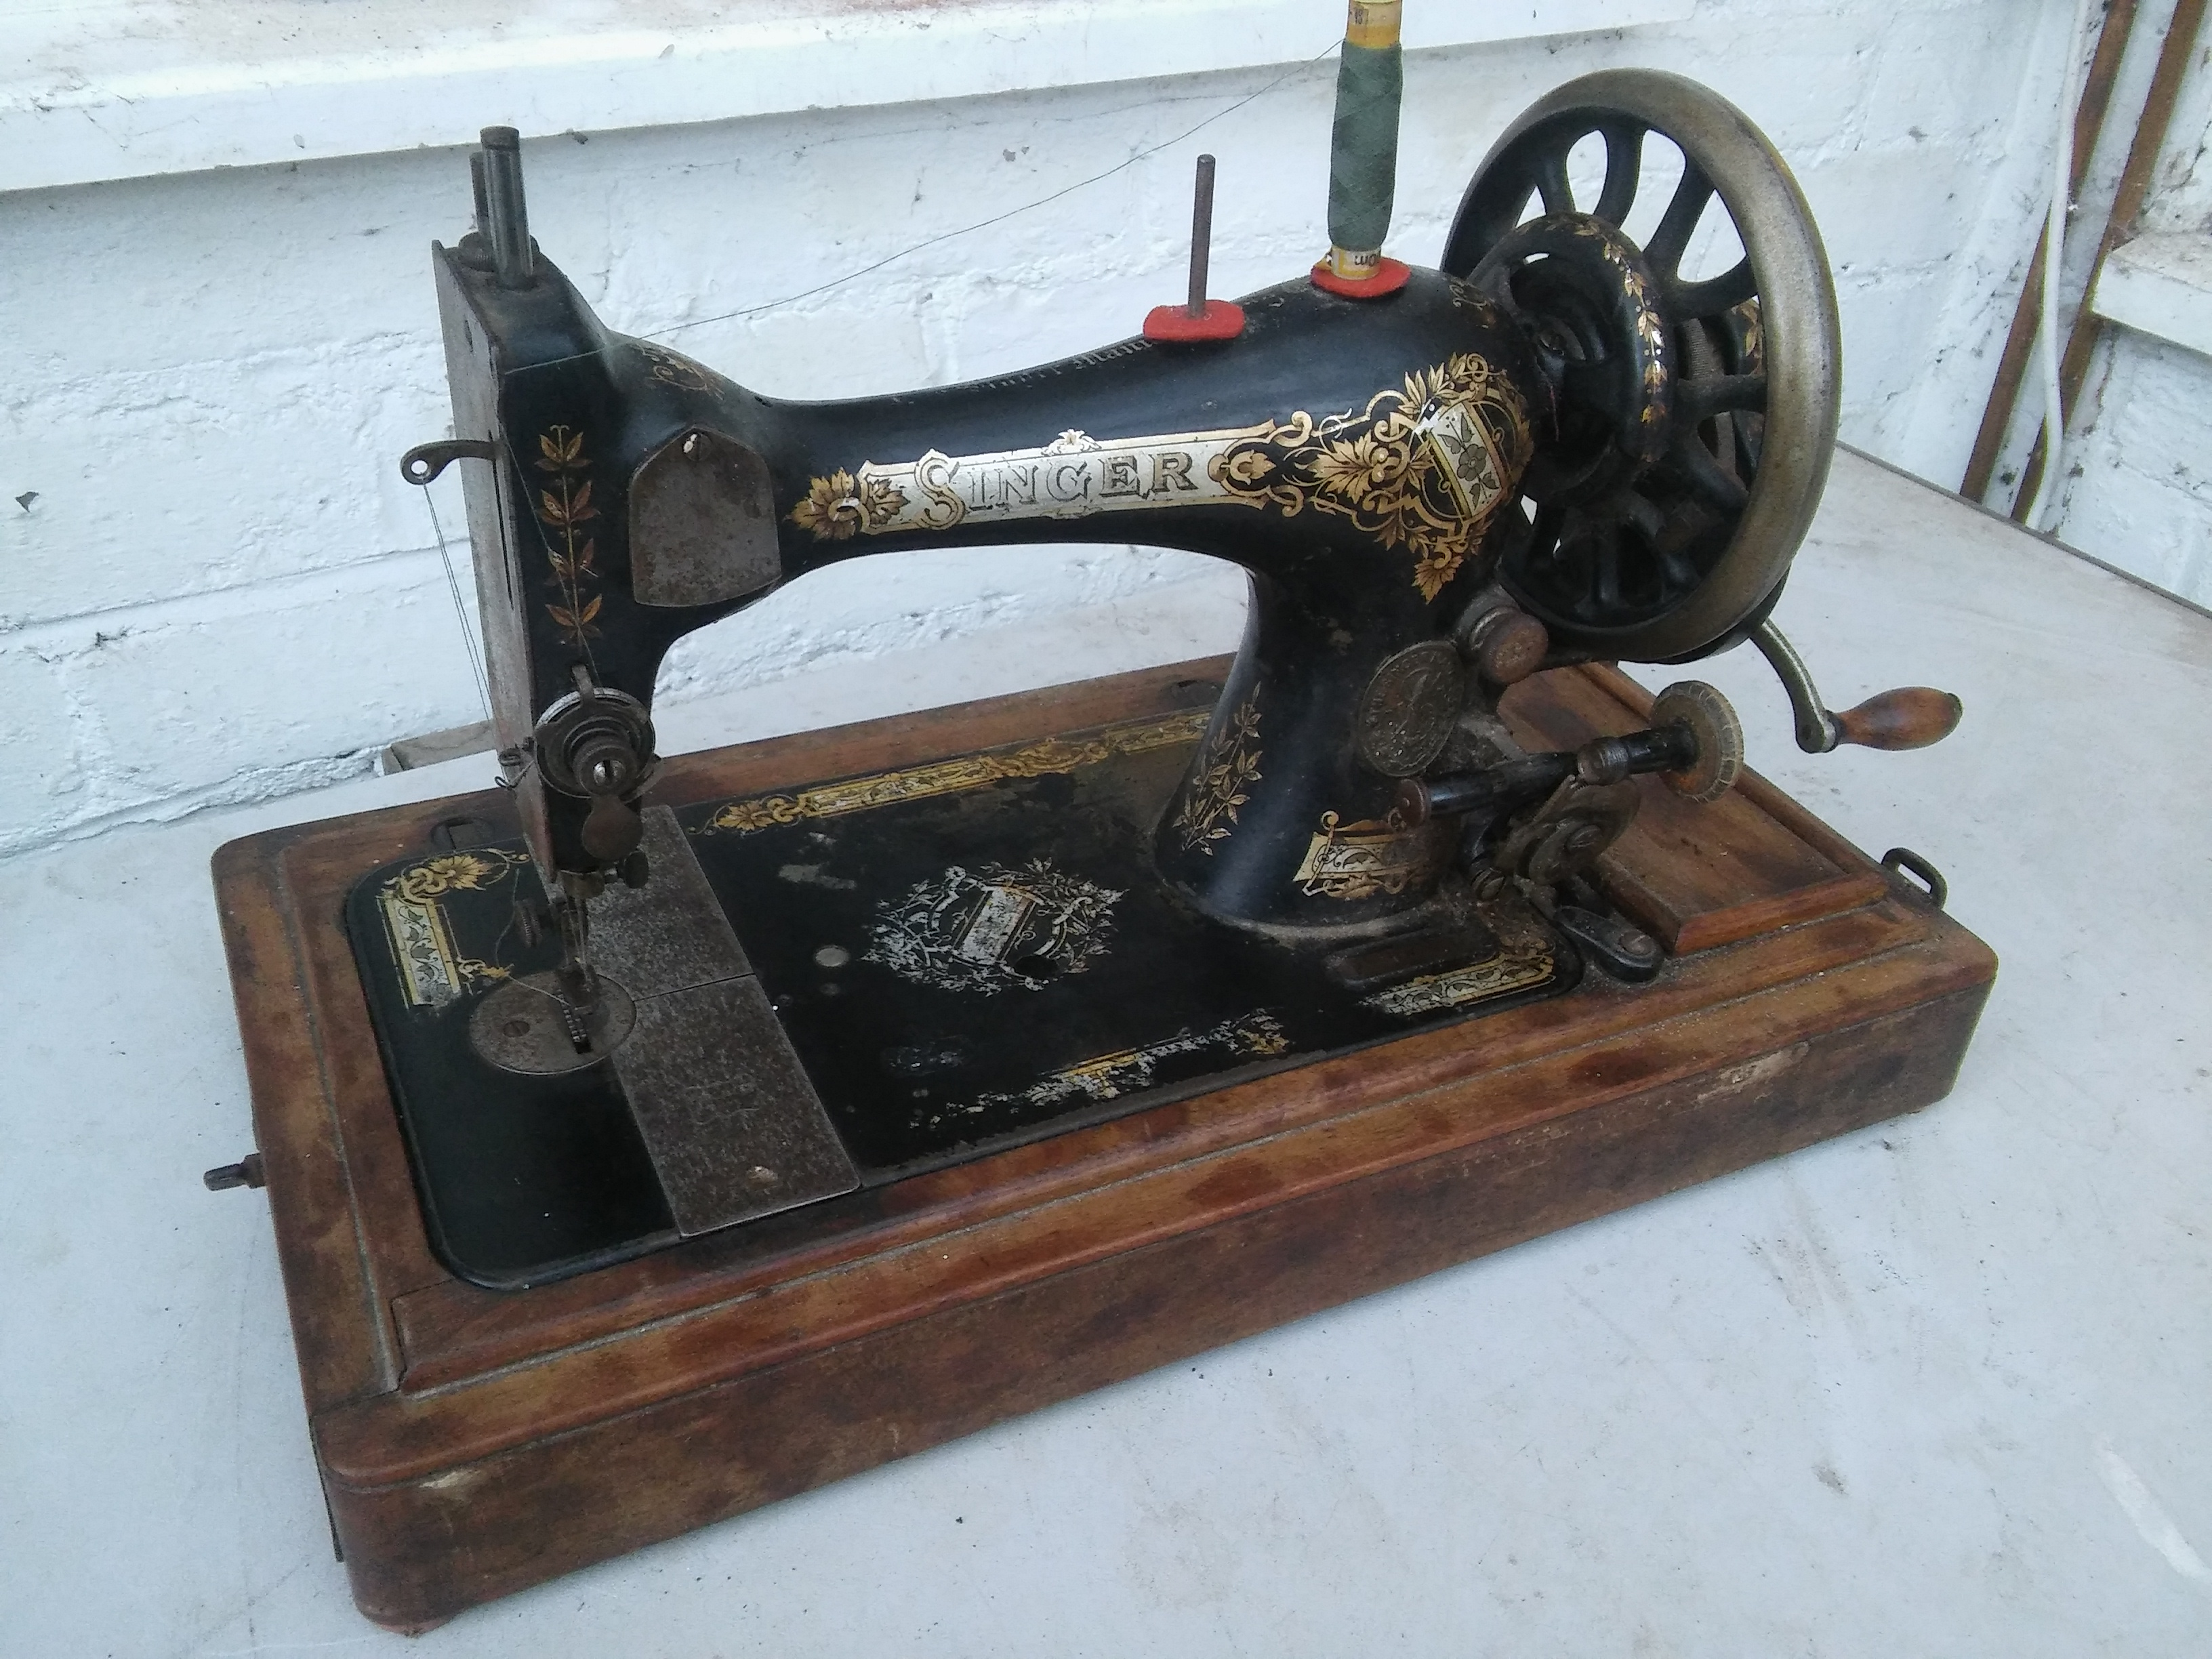 Quite a number of our fixers own vintage sewing machines. Here's one thatw as rescued by Andy and repaired a few months ago.